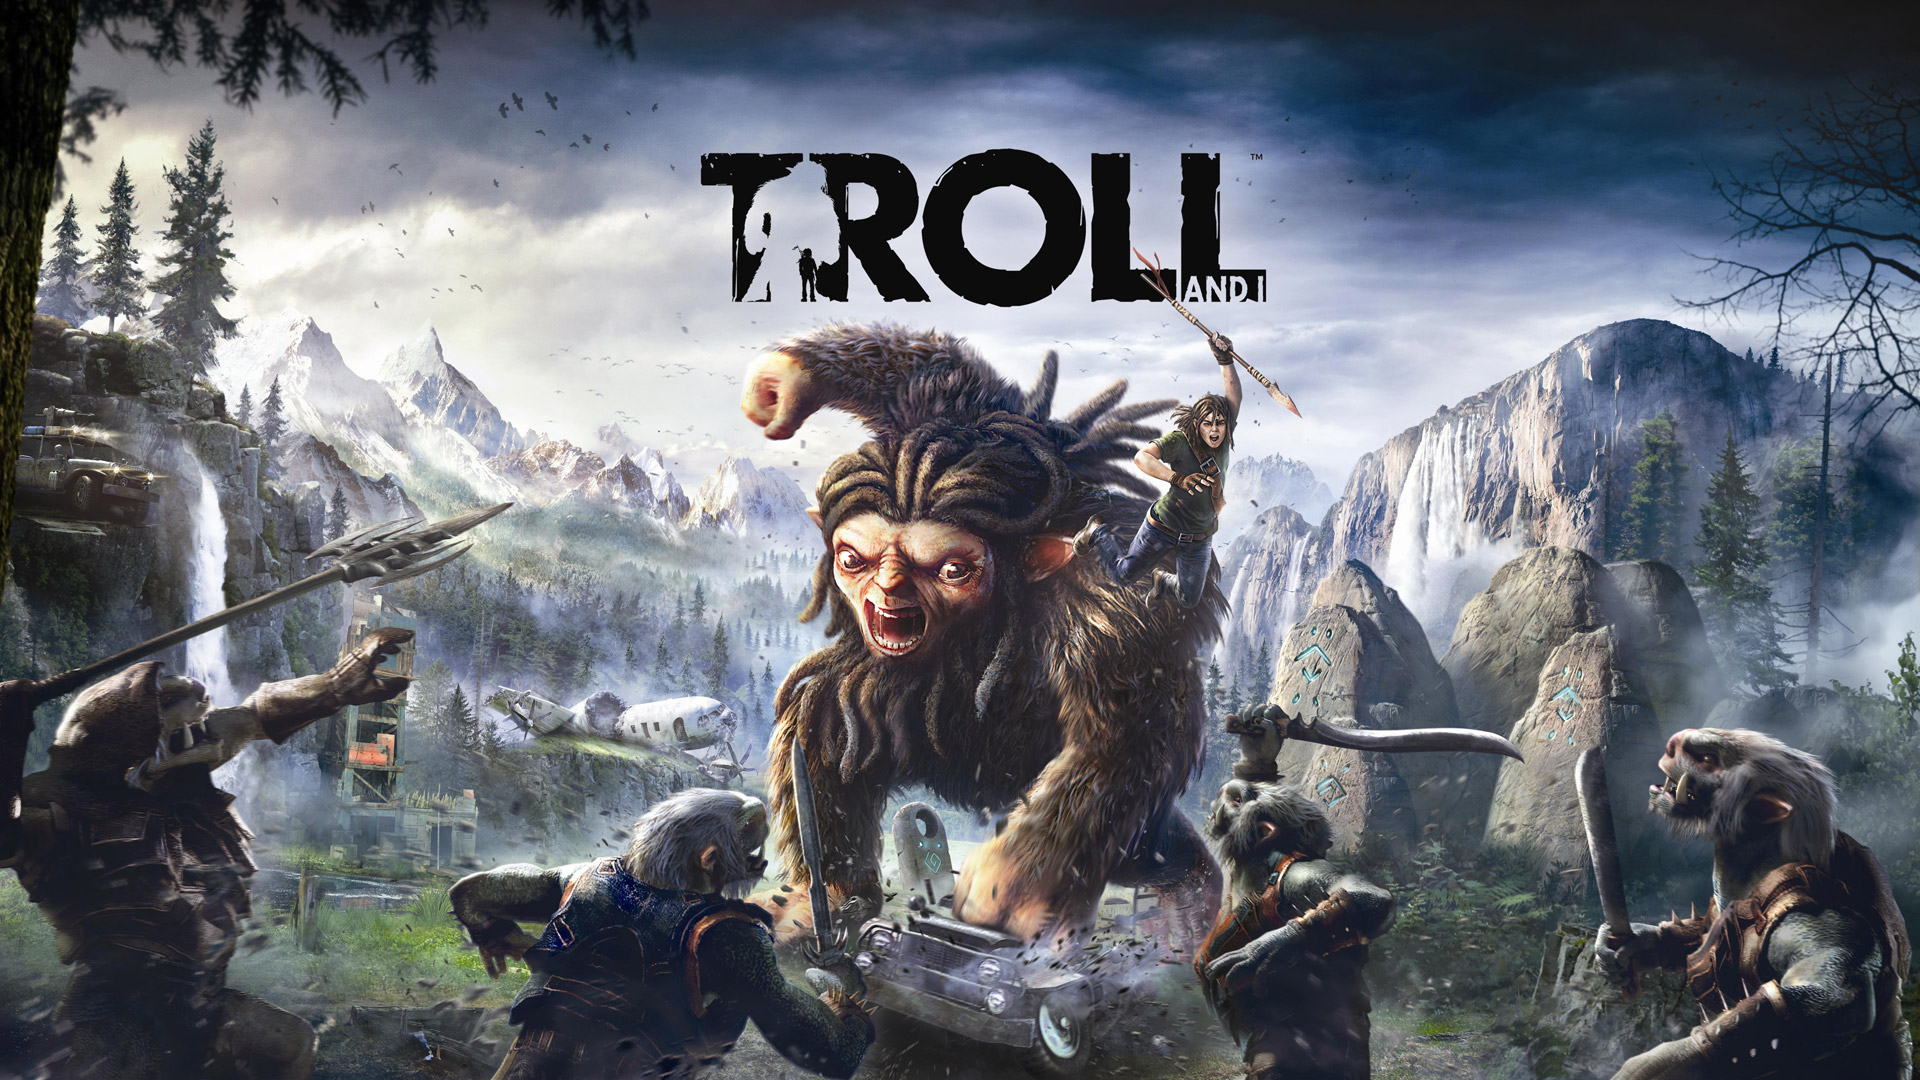 Troll and I Wallpaper in 1920x1080